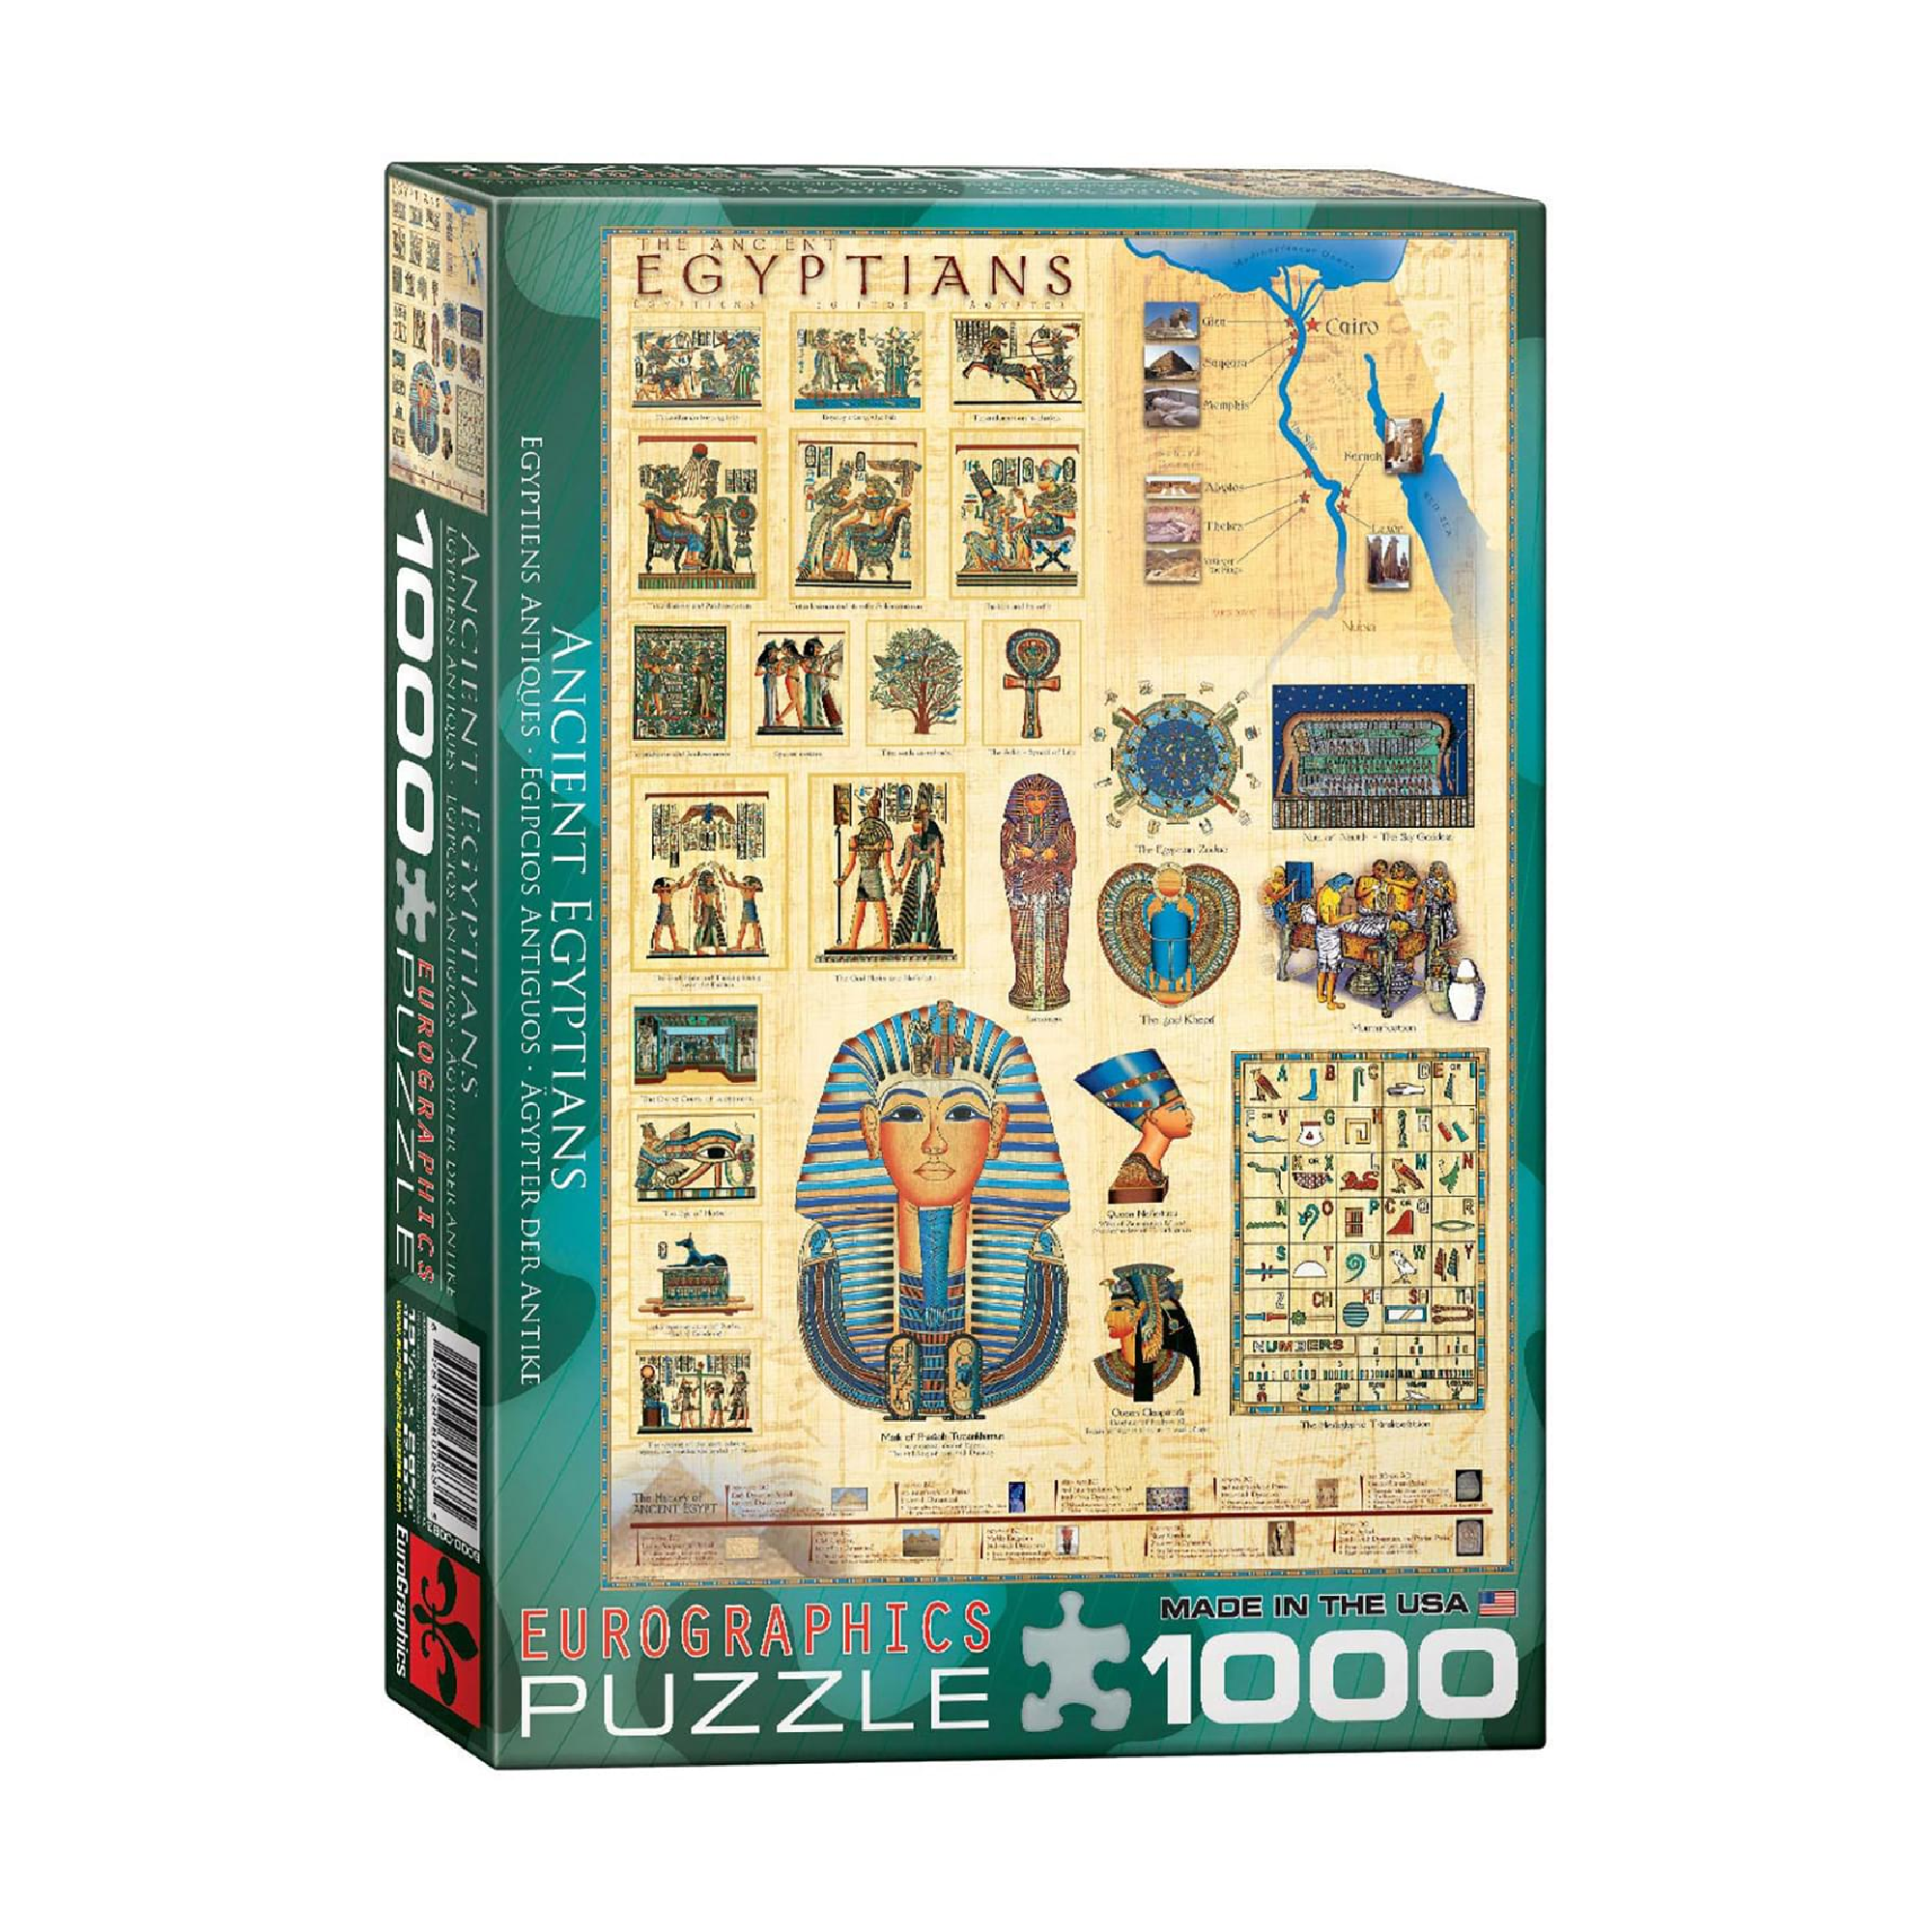 Eurographics Puzzle 1000: Ancient Egyptians